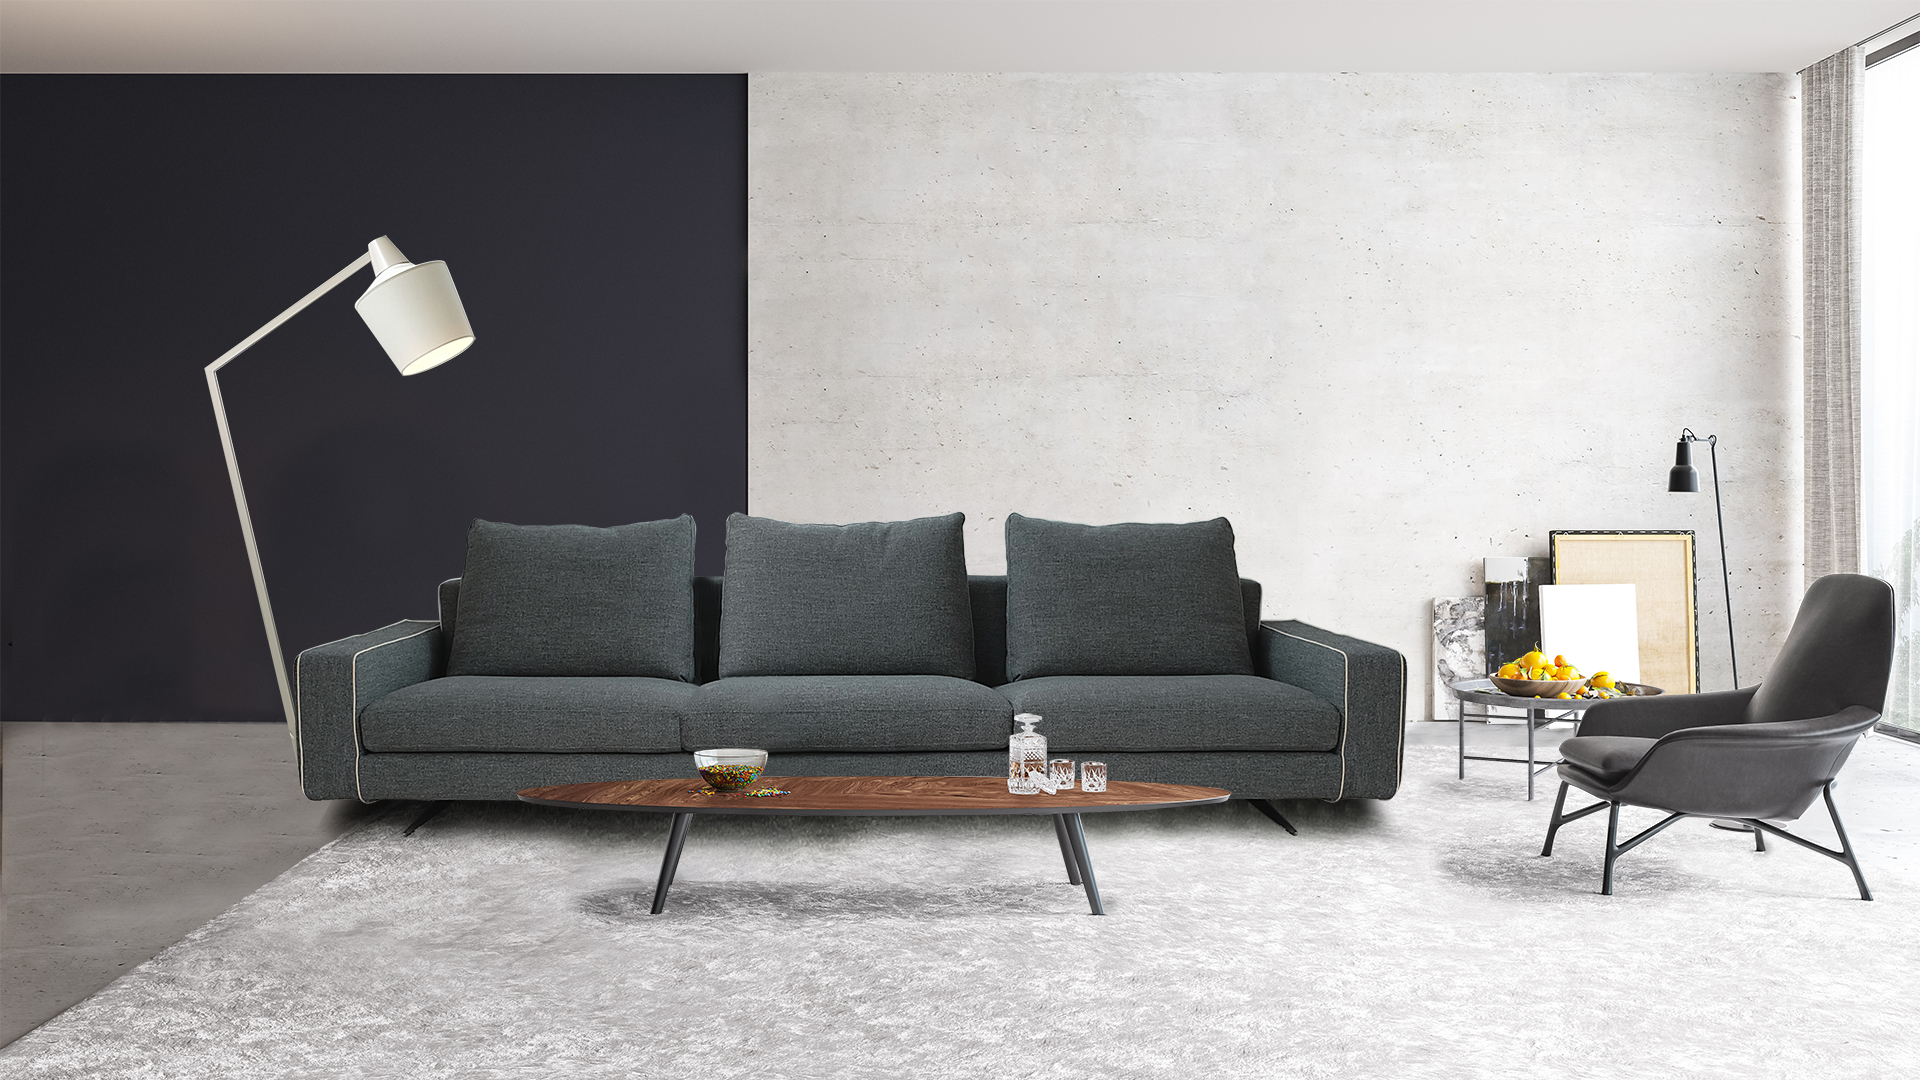 Modern interior design of a living room in an apartment, house, office, comfortable sofa, bright modern interior details and light from the window on the background of the Disiner wall.